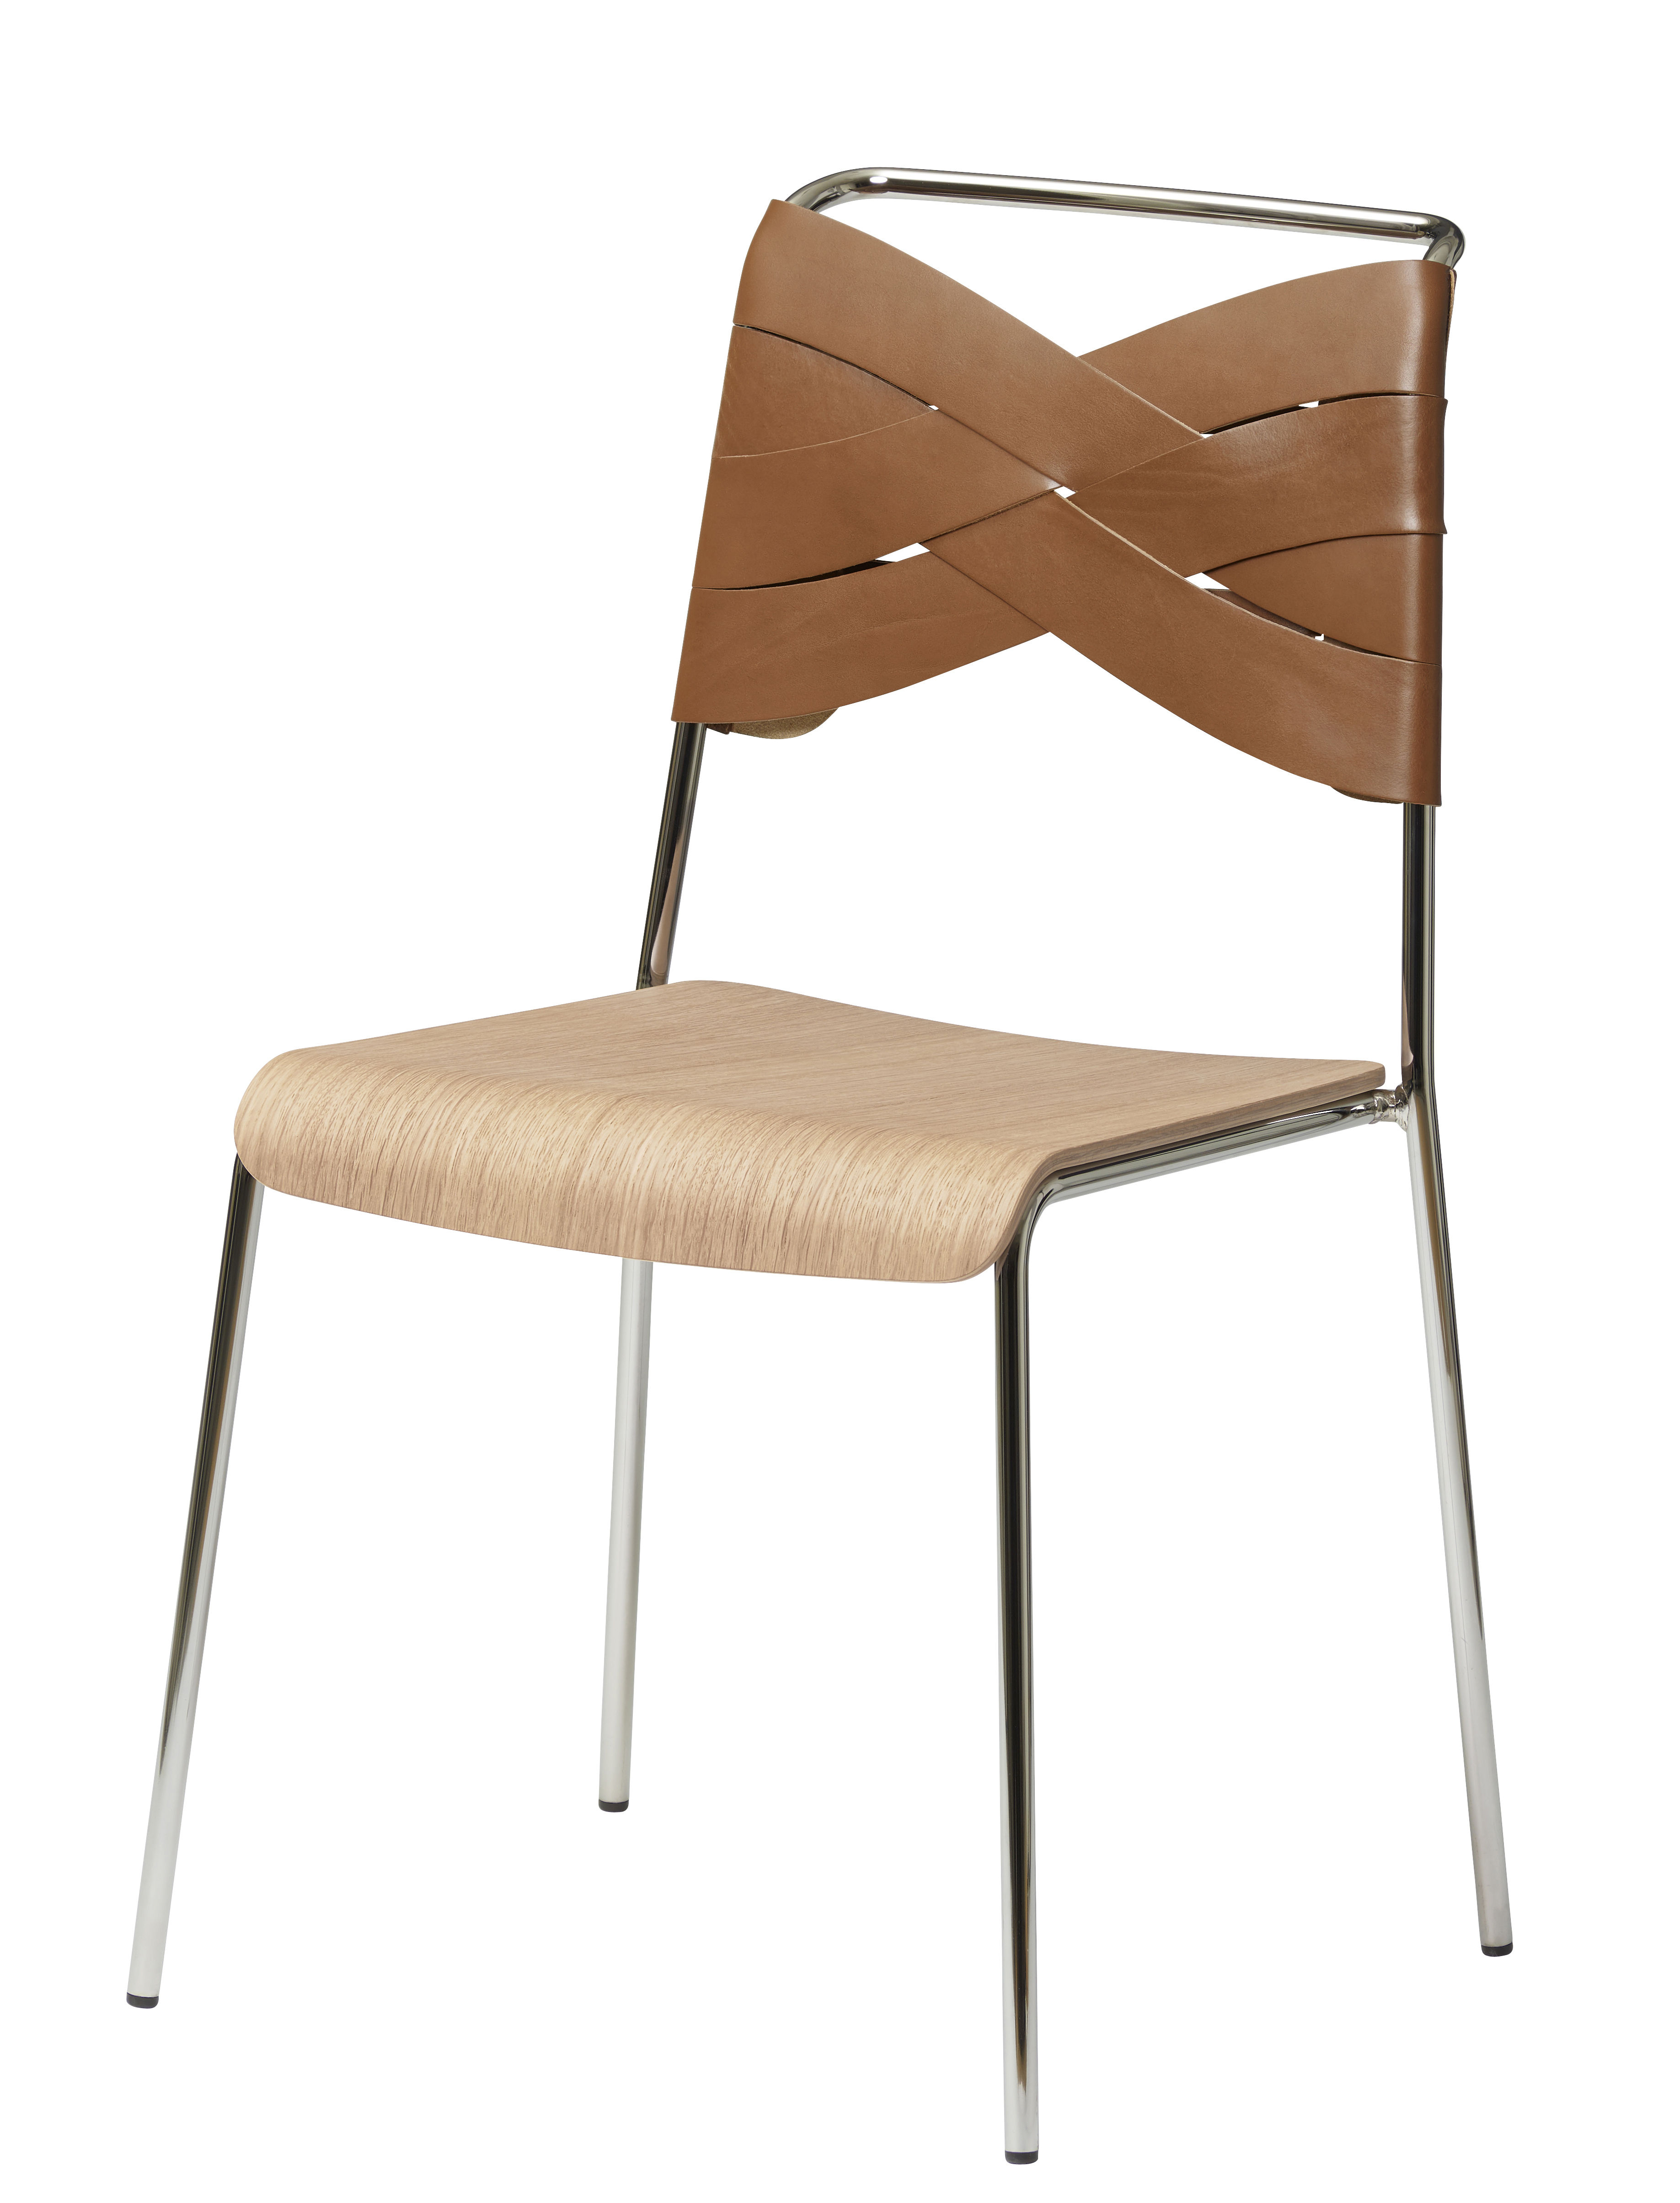 Furniture - Chairs - Torso Chair - Leather by Design House Stockholm - Cognac leather / Oak seat - Chromed metal, Genuine leather, Natural oak plywood